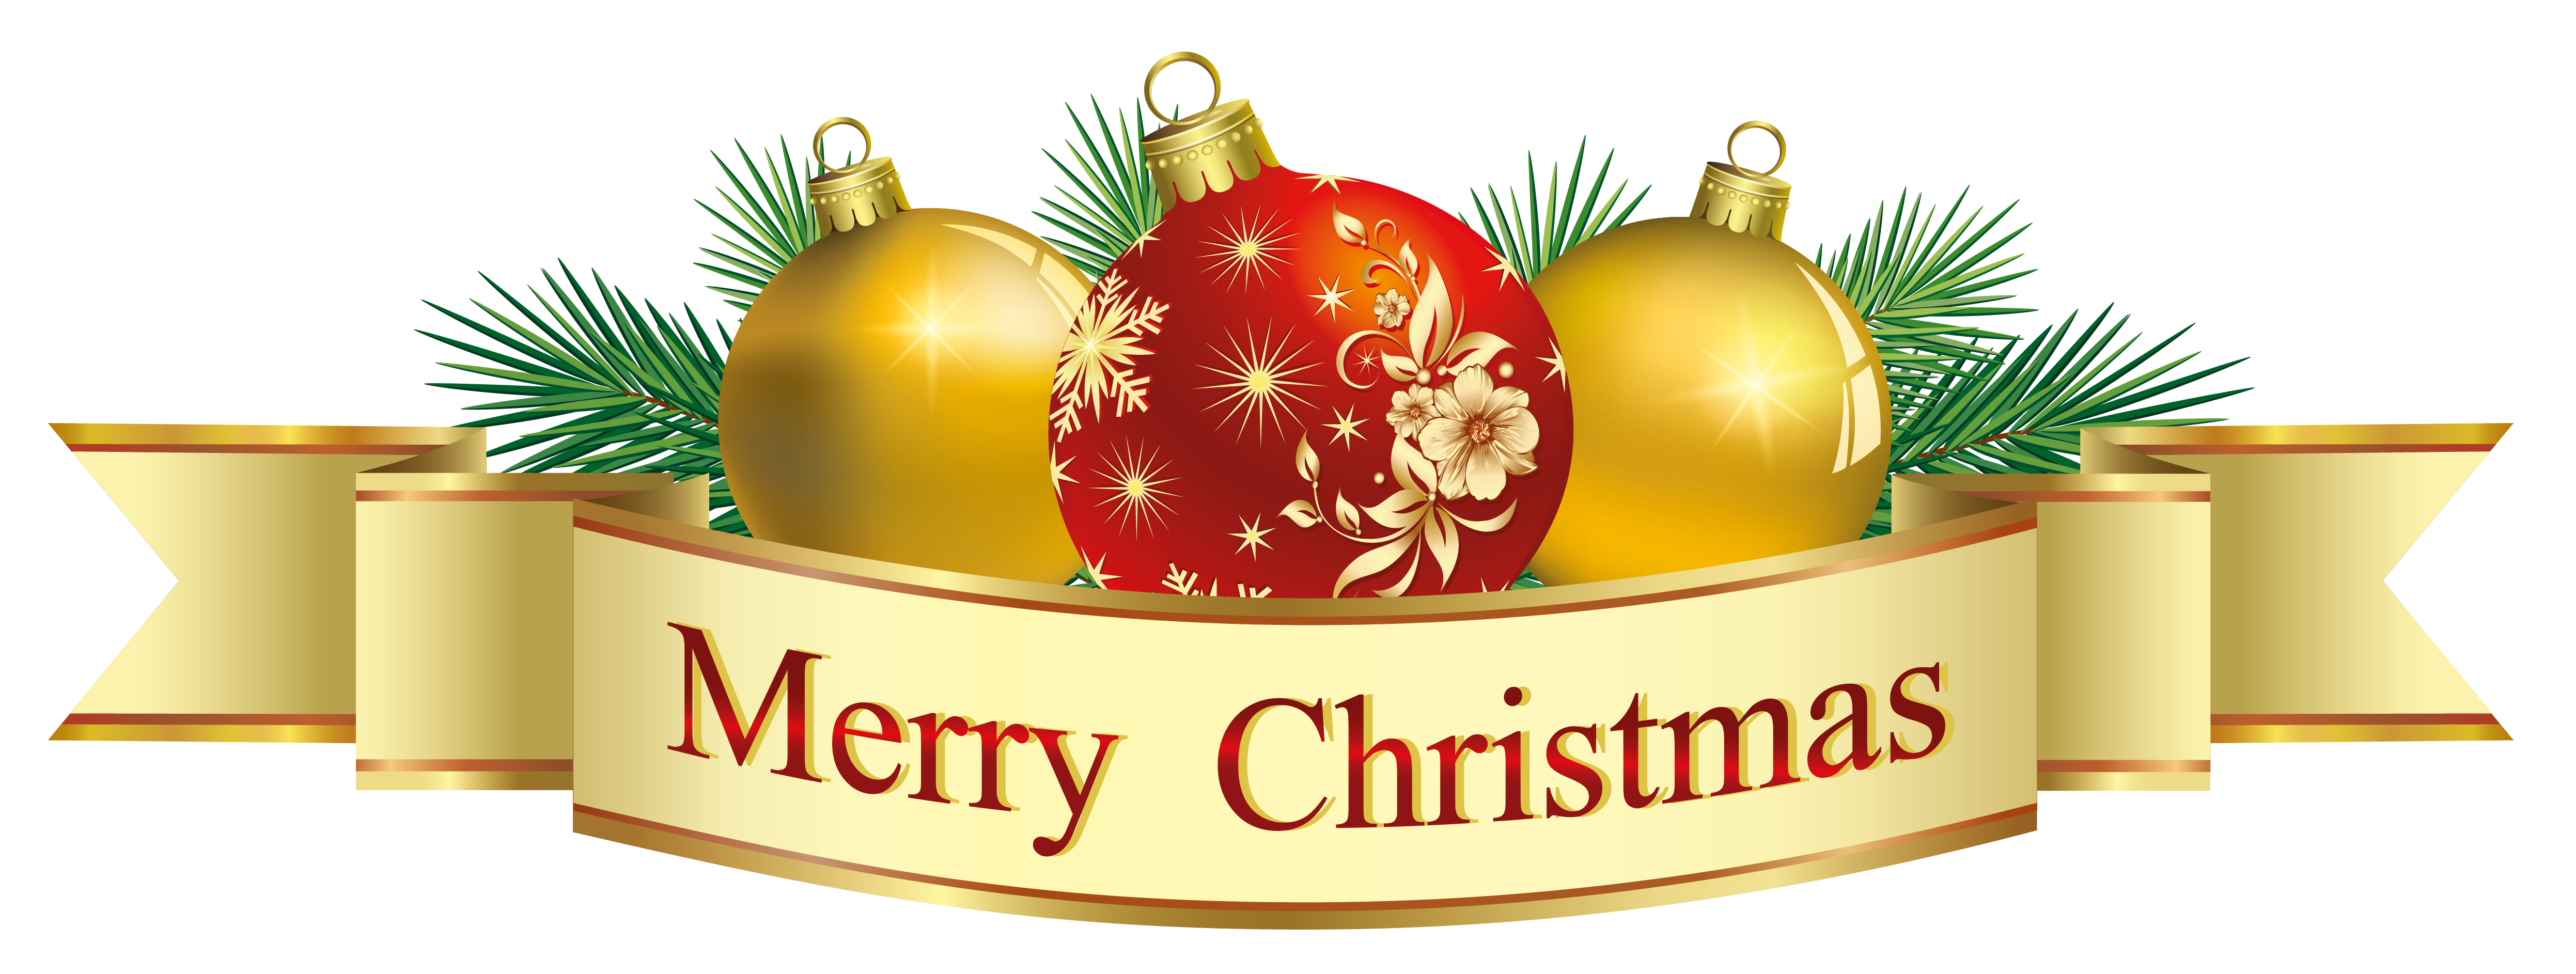 Clipart merry christmas banner freeuse download merry-christmas-clip-art-images1-klein-school-0ctsdf-clipart ... banner freeuse download